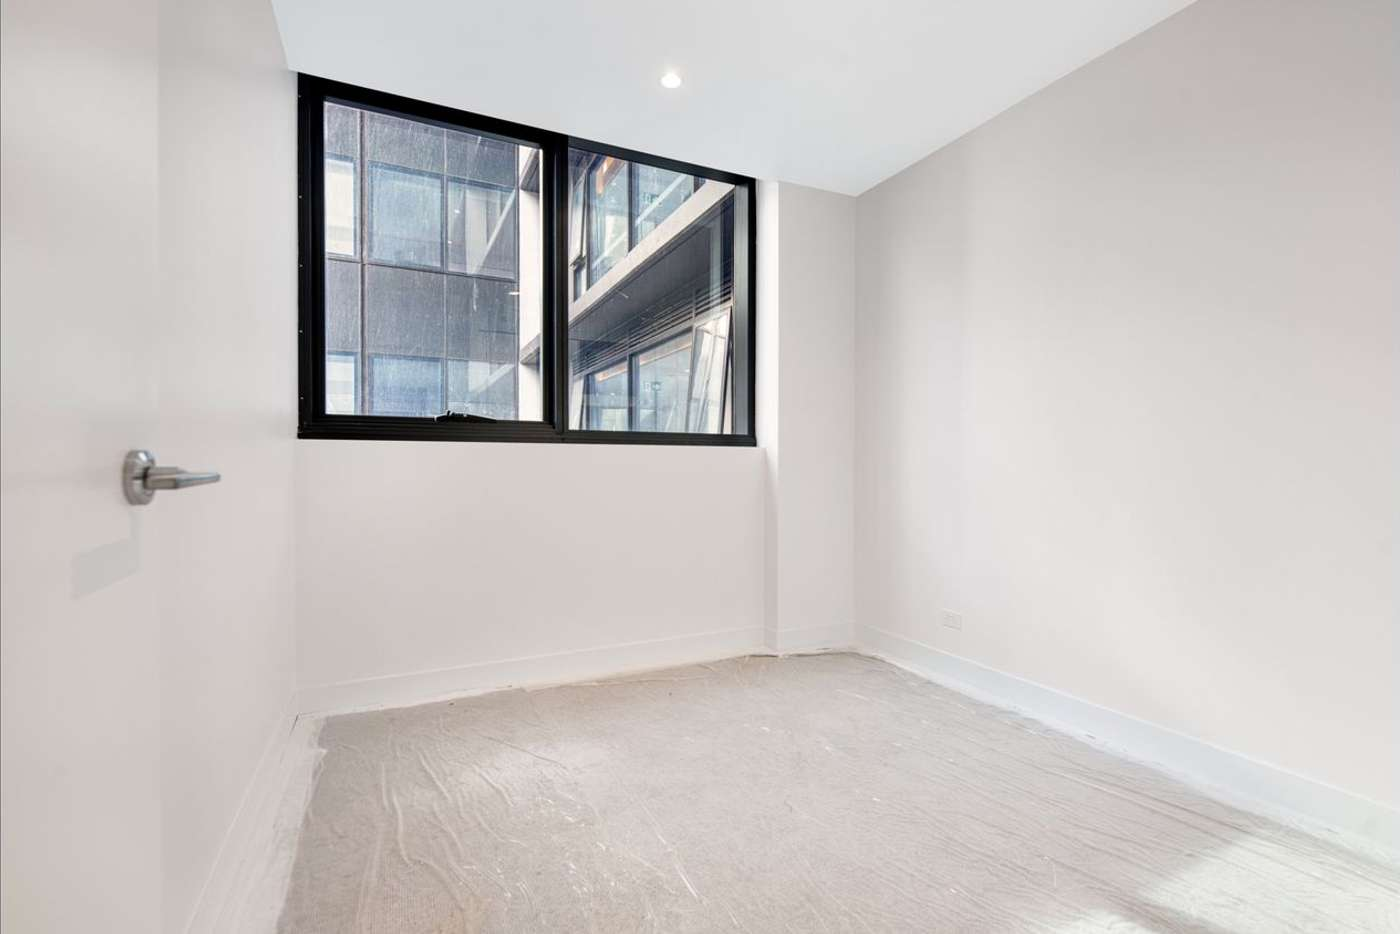 Sixth view of Homely apartment listing, 304/649 Chapel Street, South Yarra VIC 3141